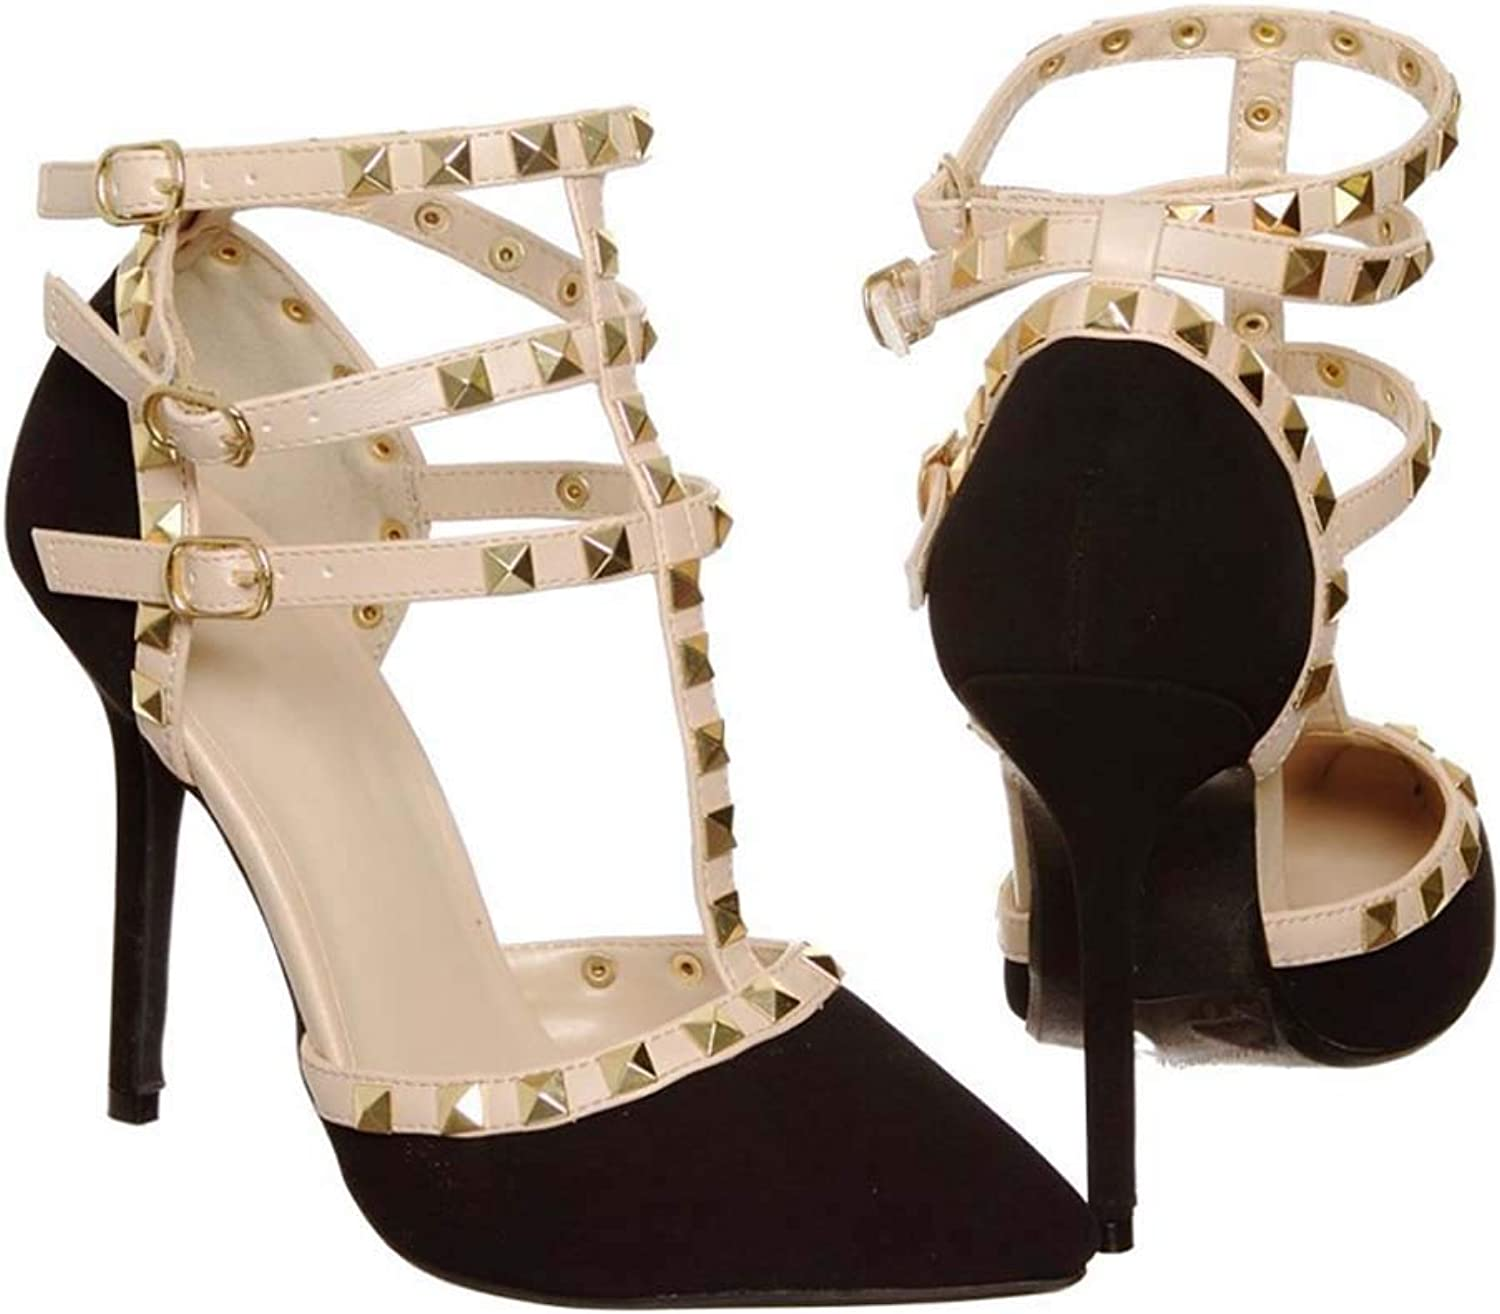 Sandals Female Pointed Head with Women's Sandals T-Type Strap Rivets shoes